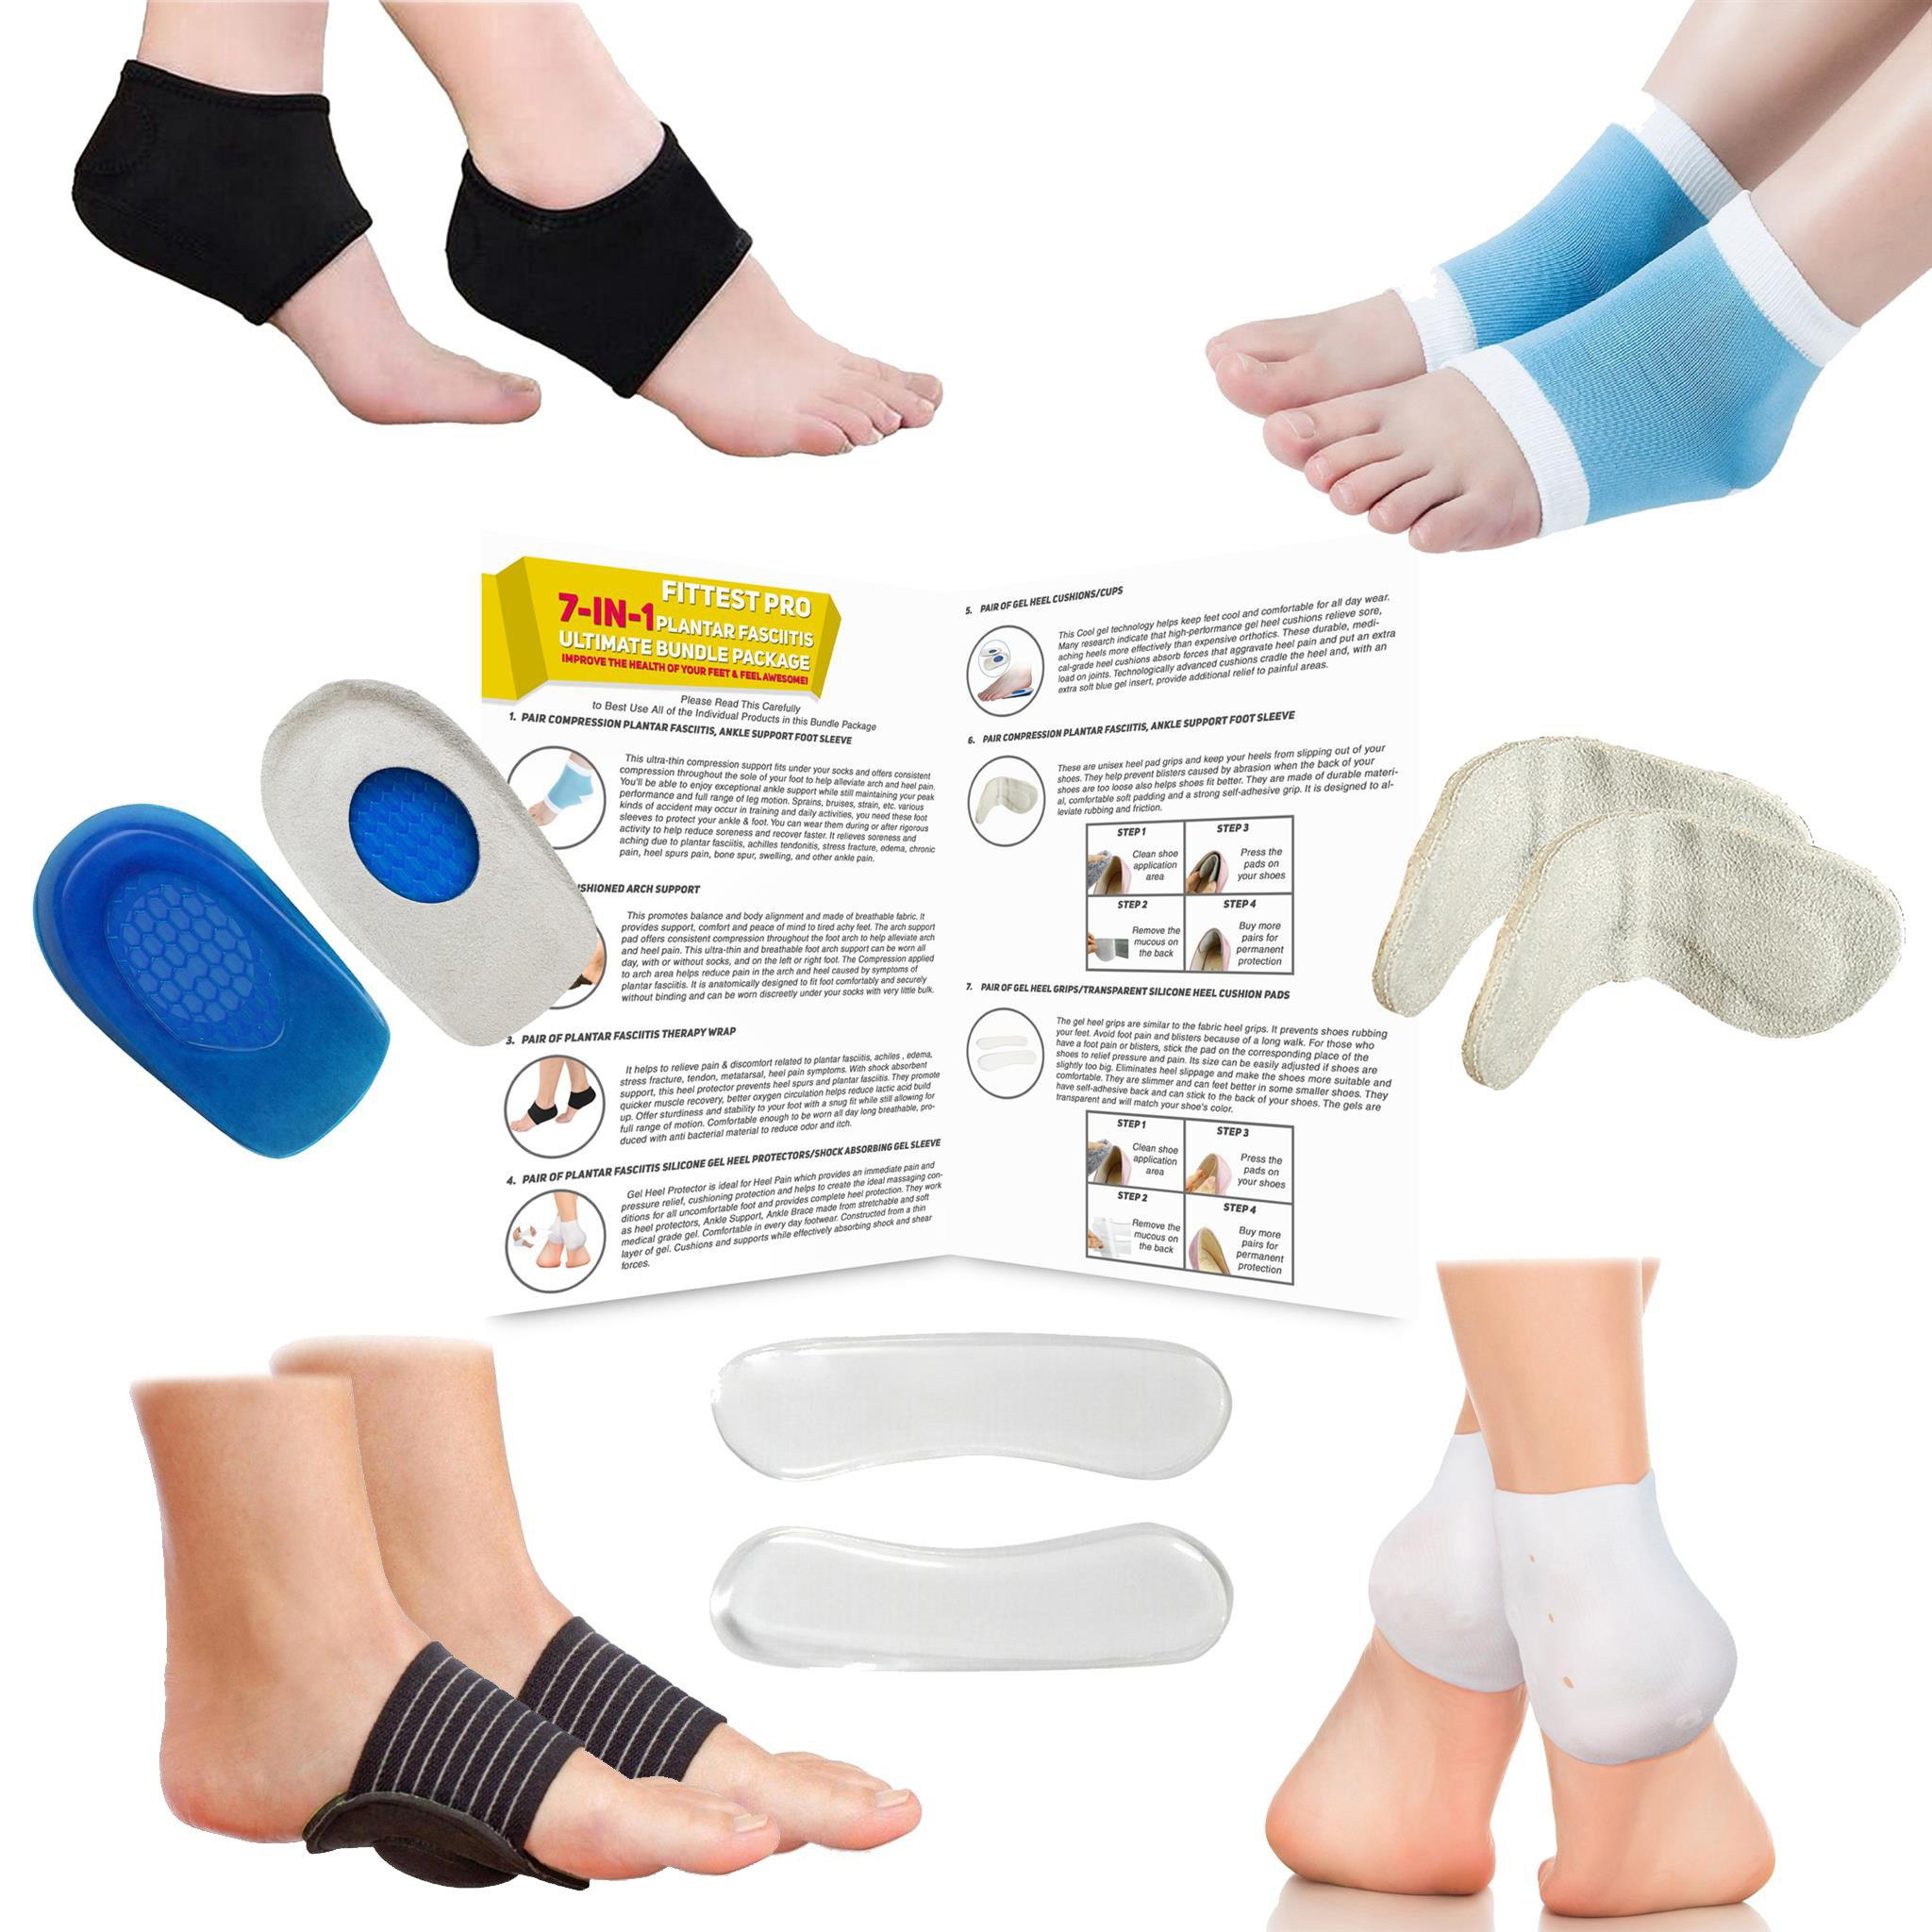 Fittest Pro Plantar Fasciitis Foot Compression Sleeve Package - Ankle & Foot Pain Relief Socks - Heel & Arch Support, Heel Pads, Heel Cups And Grips, Shoe Inserts & Insoles - (Pack of 14)